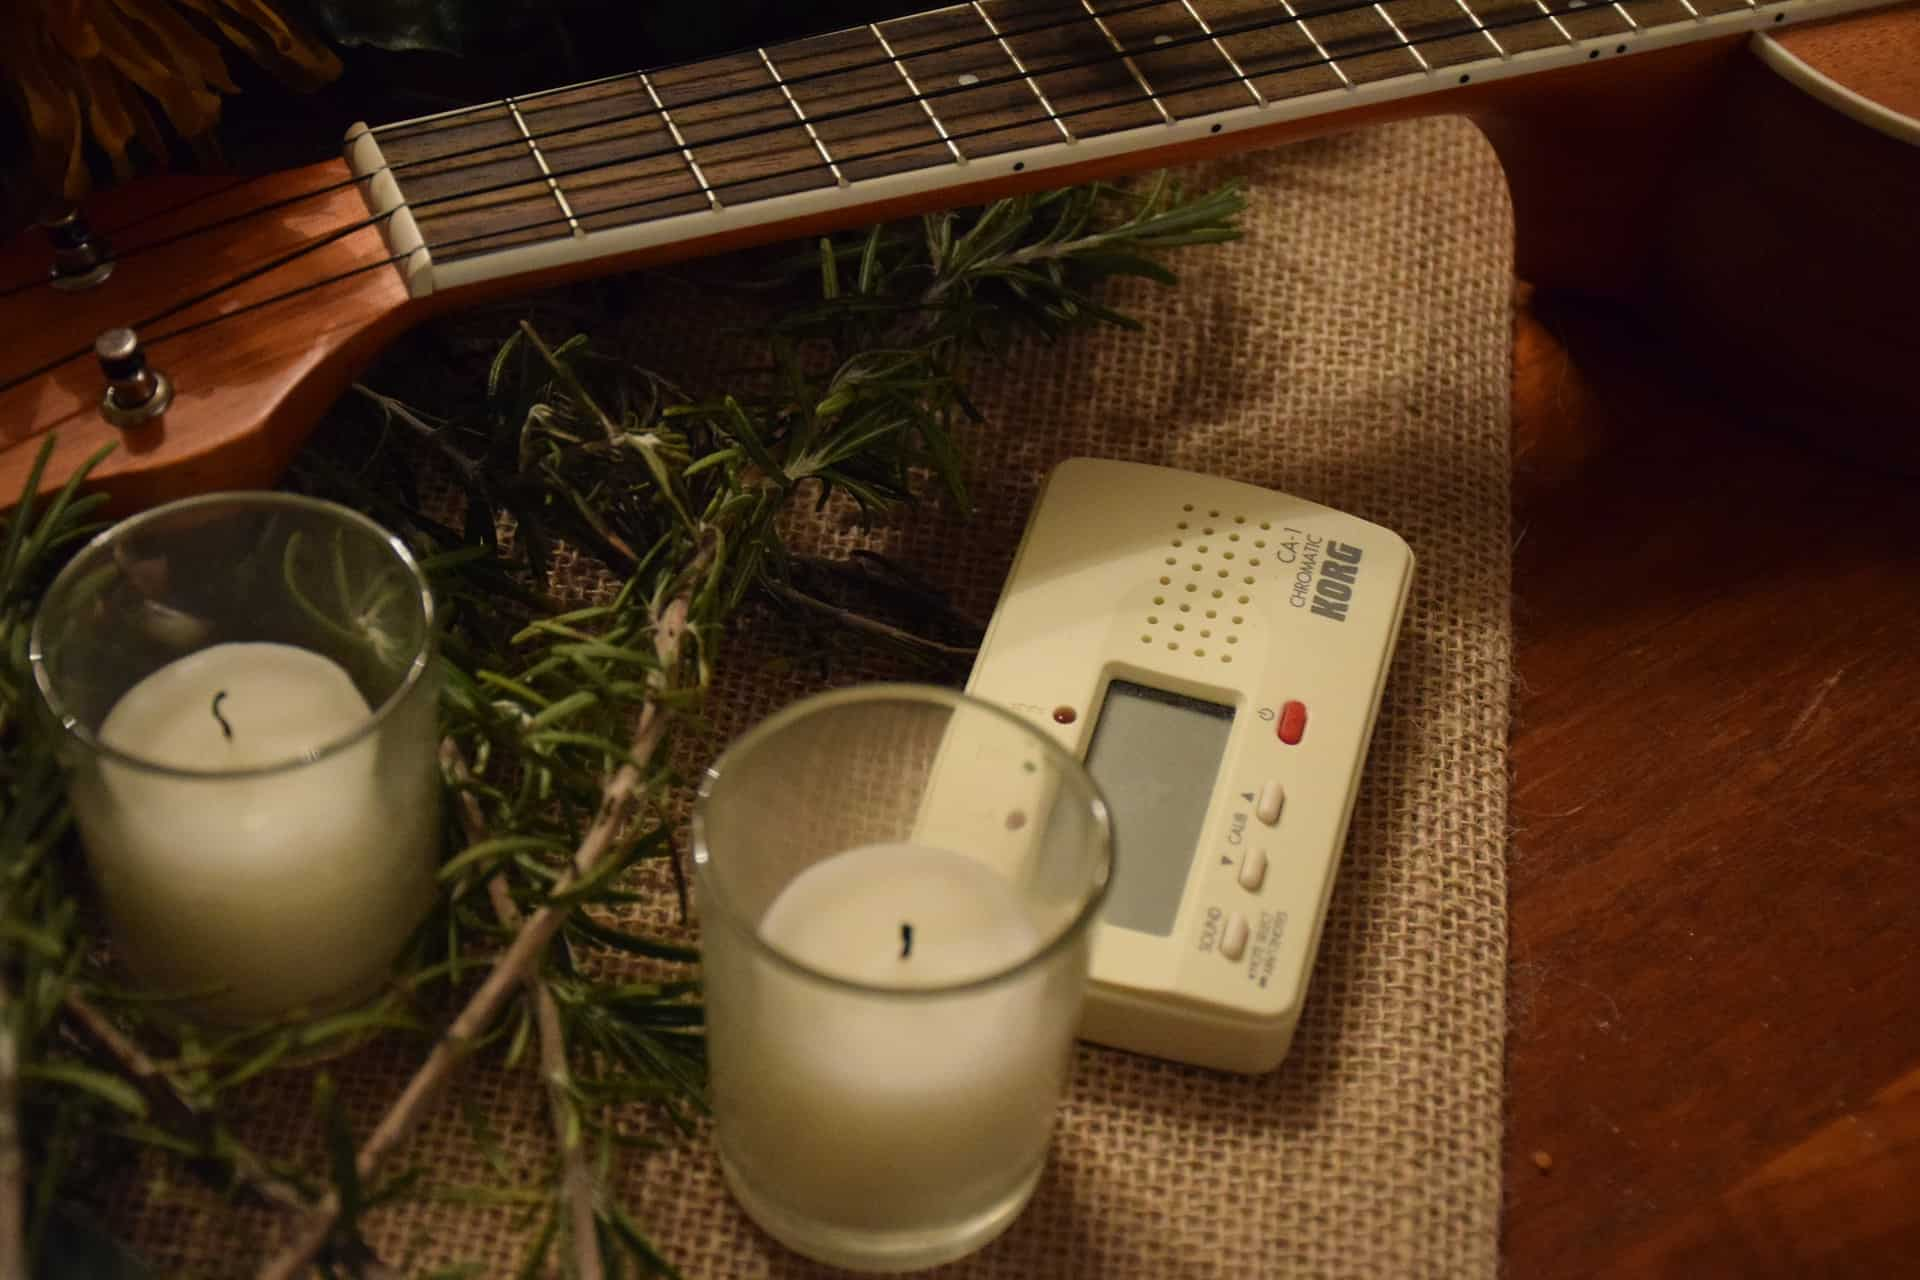 Image of a tuner with two candles and a guitar.